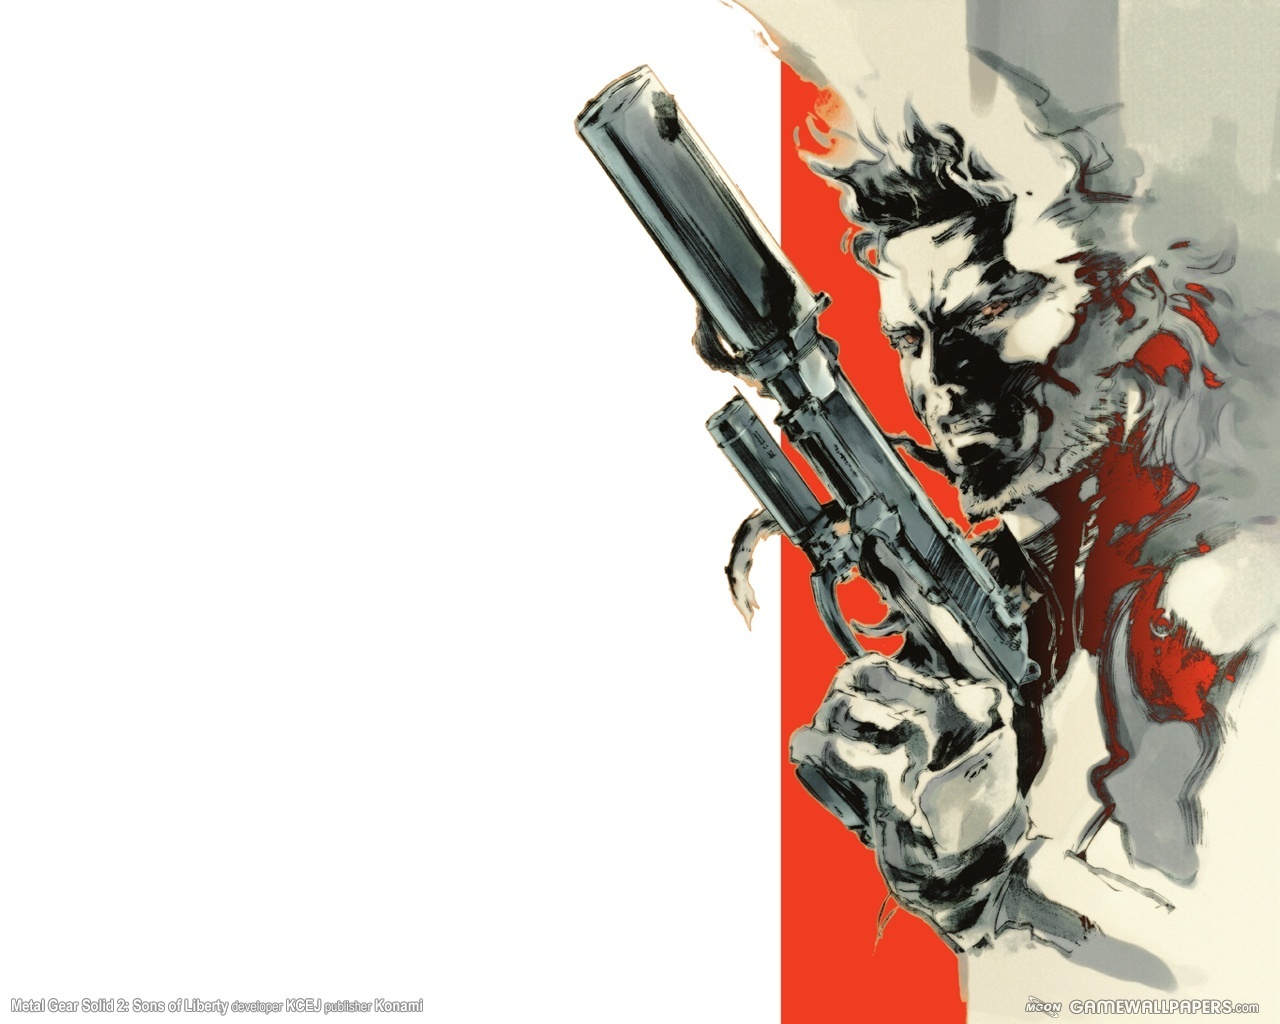 metal gear solid 2 images mgs2 hd wallpaper and background